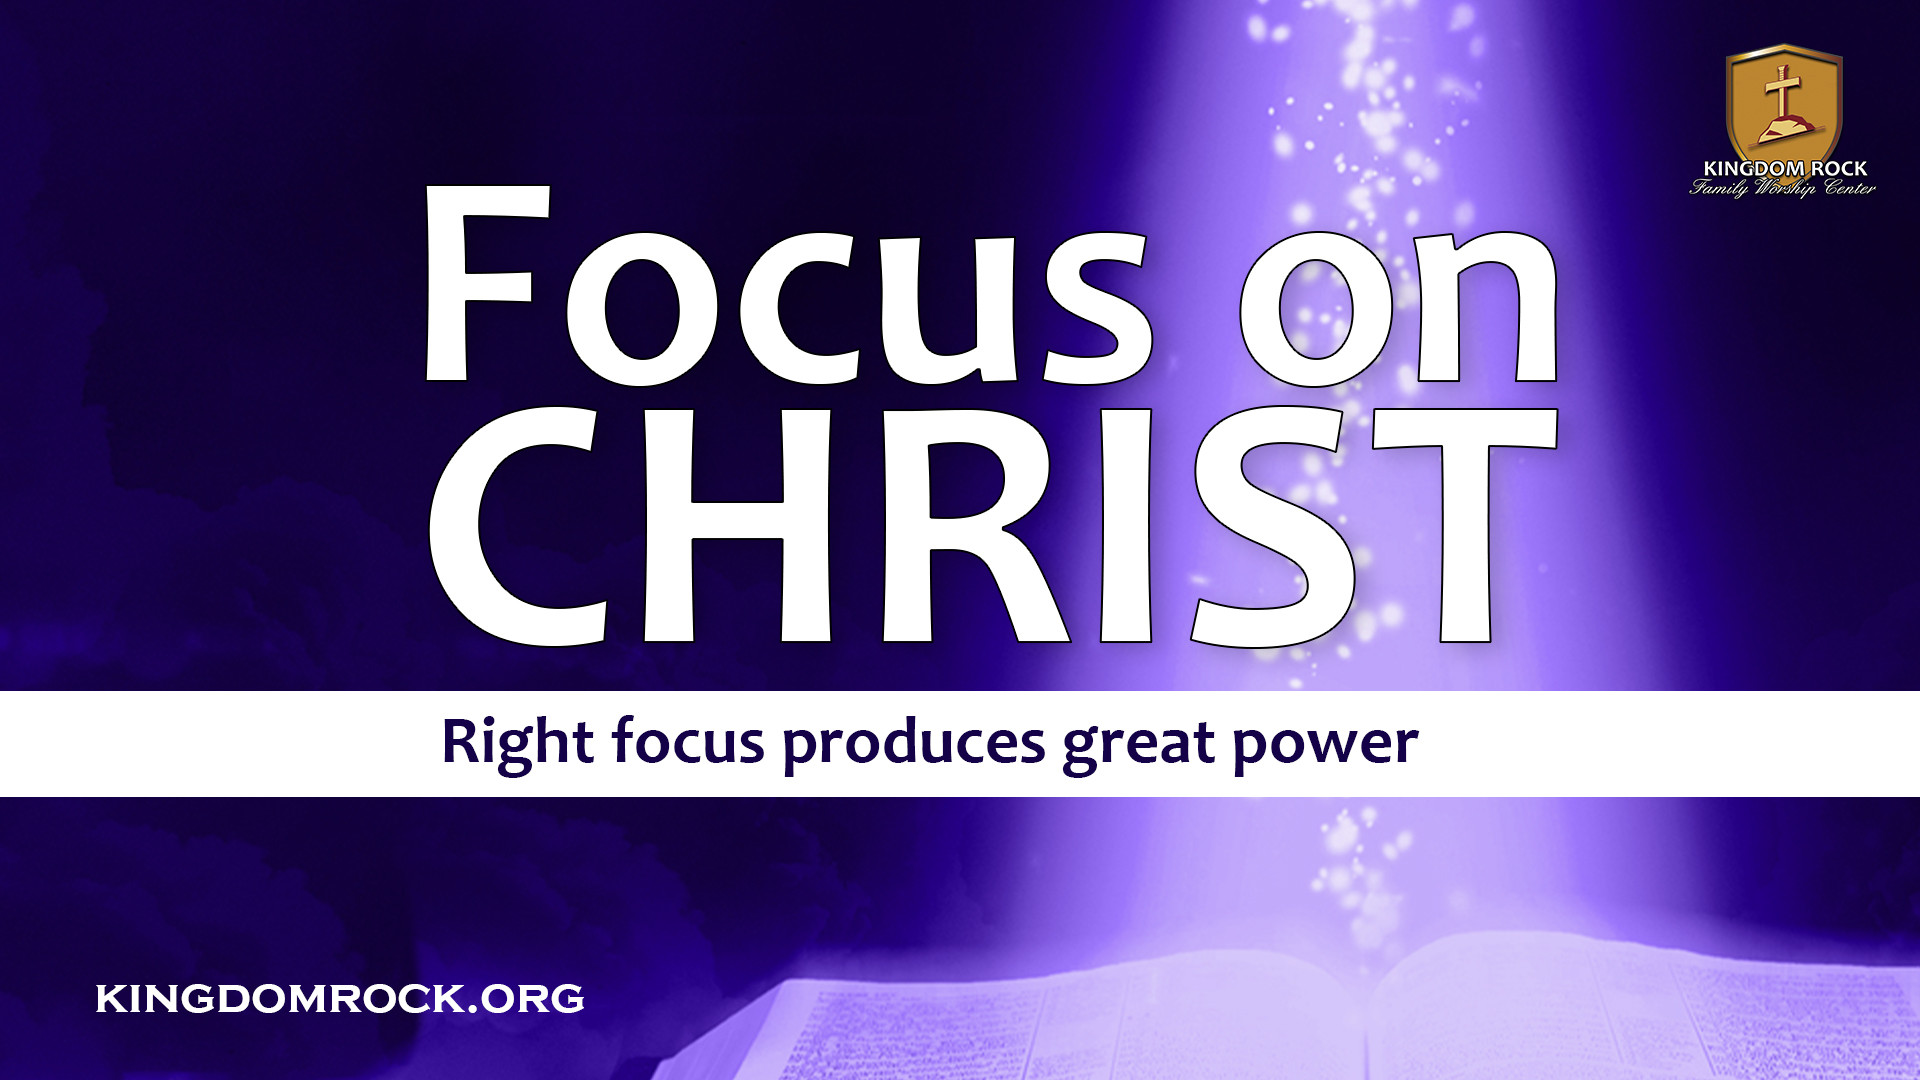 Focus On Christ series